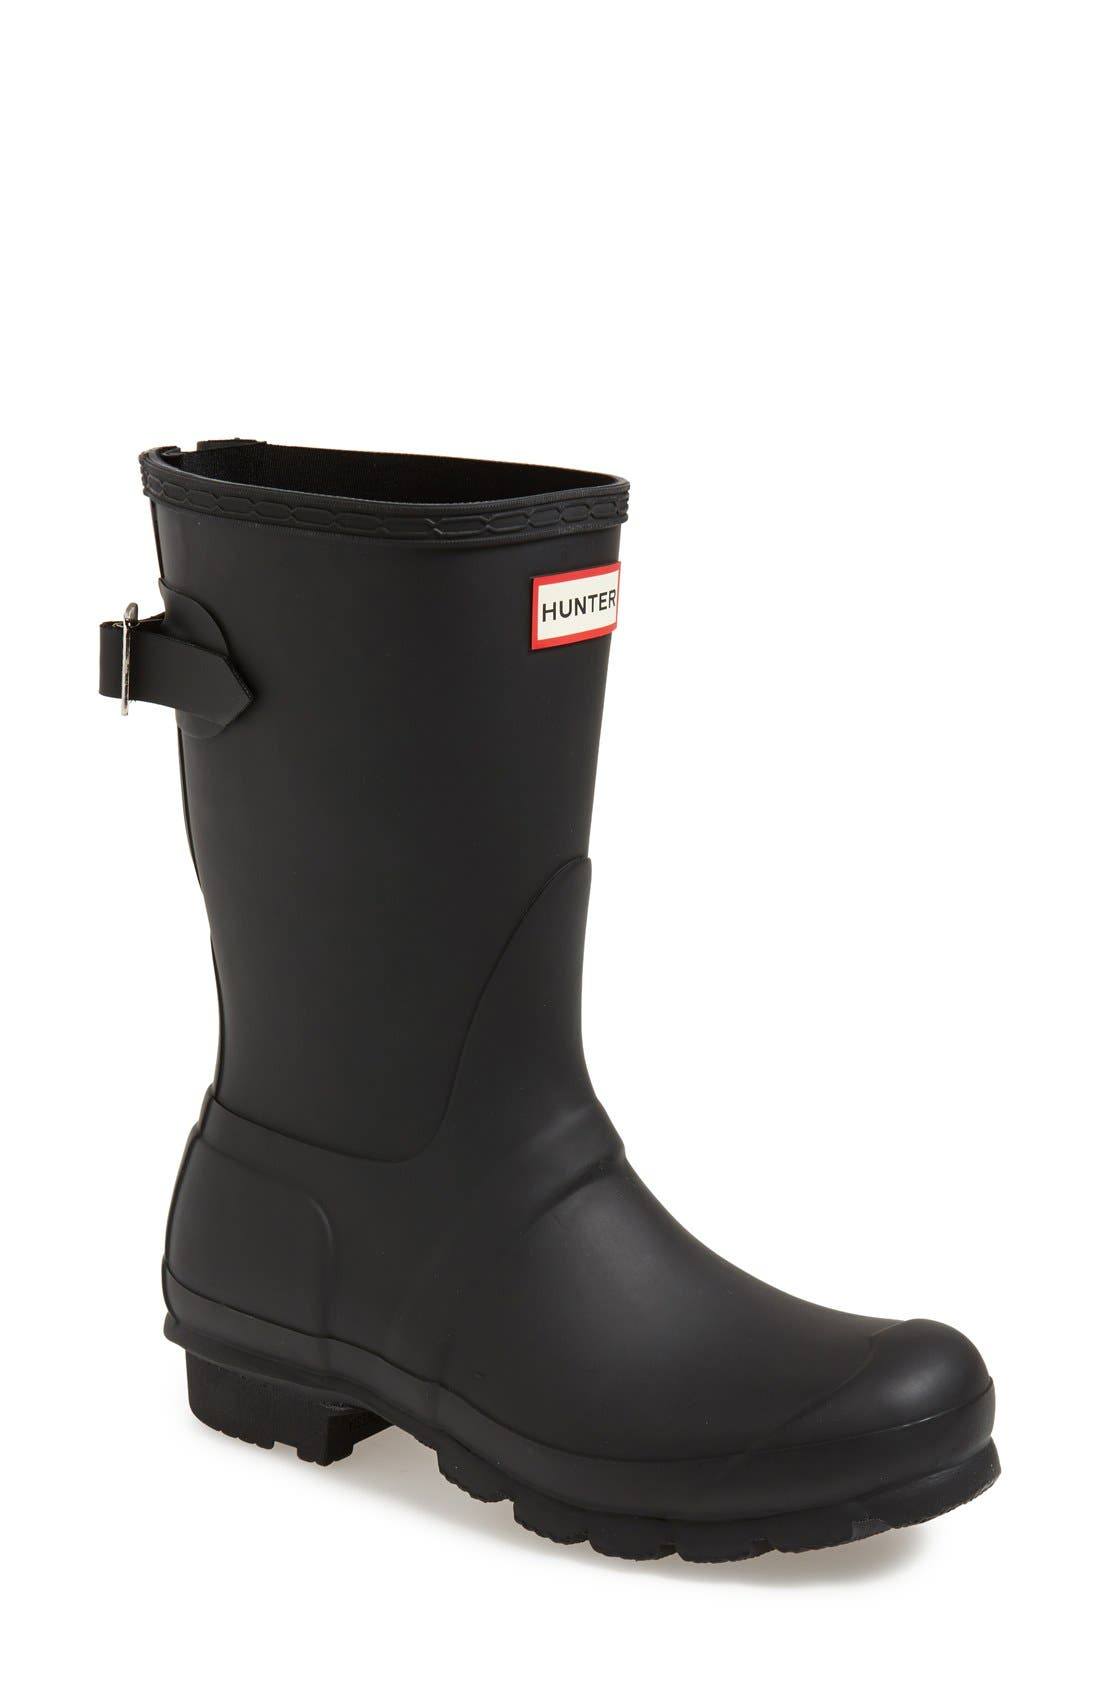 HUNTER Original Short Back Adjustable Rain Boot